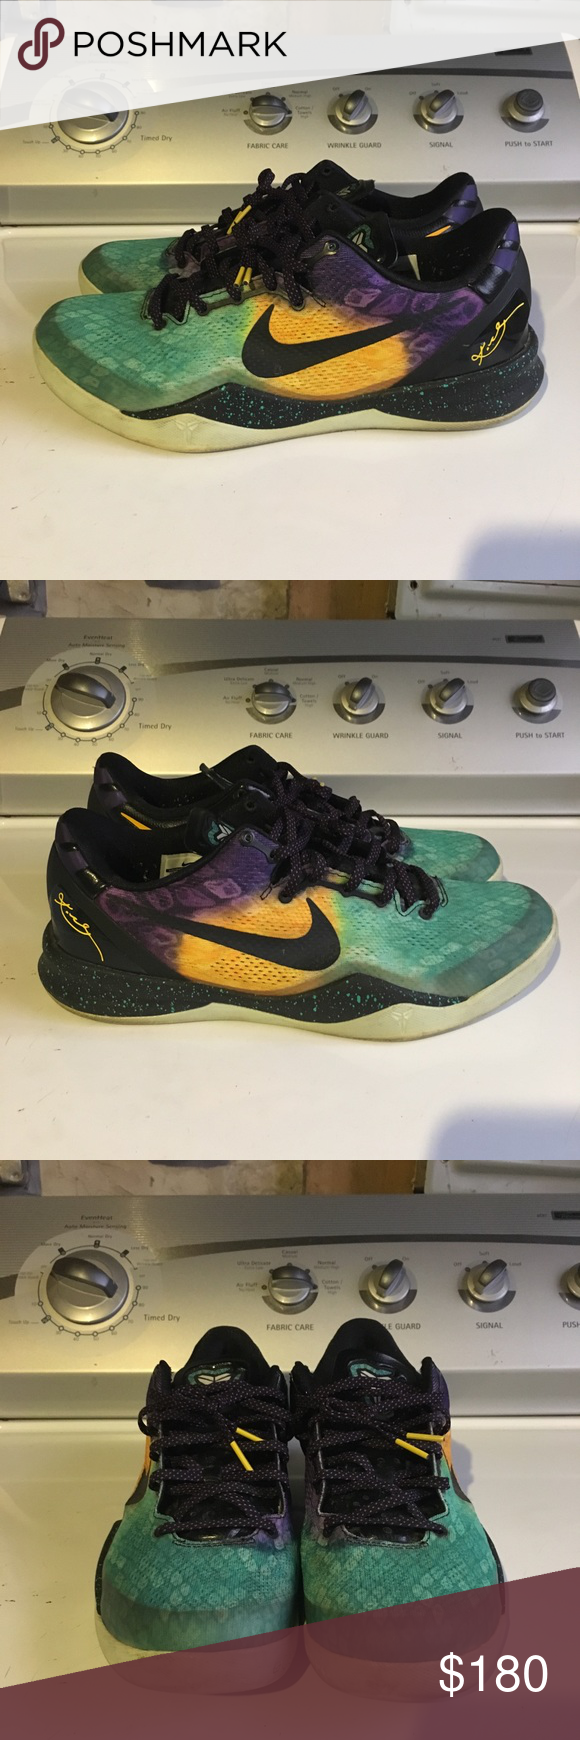 Nike Kobe VIII 8 System Easter Used pair of Easter Kobe 8s in a size ... 3565b8bb4